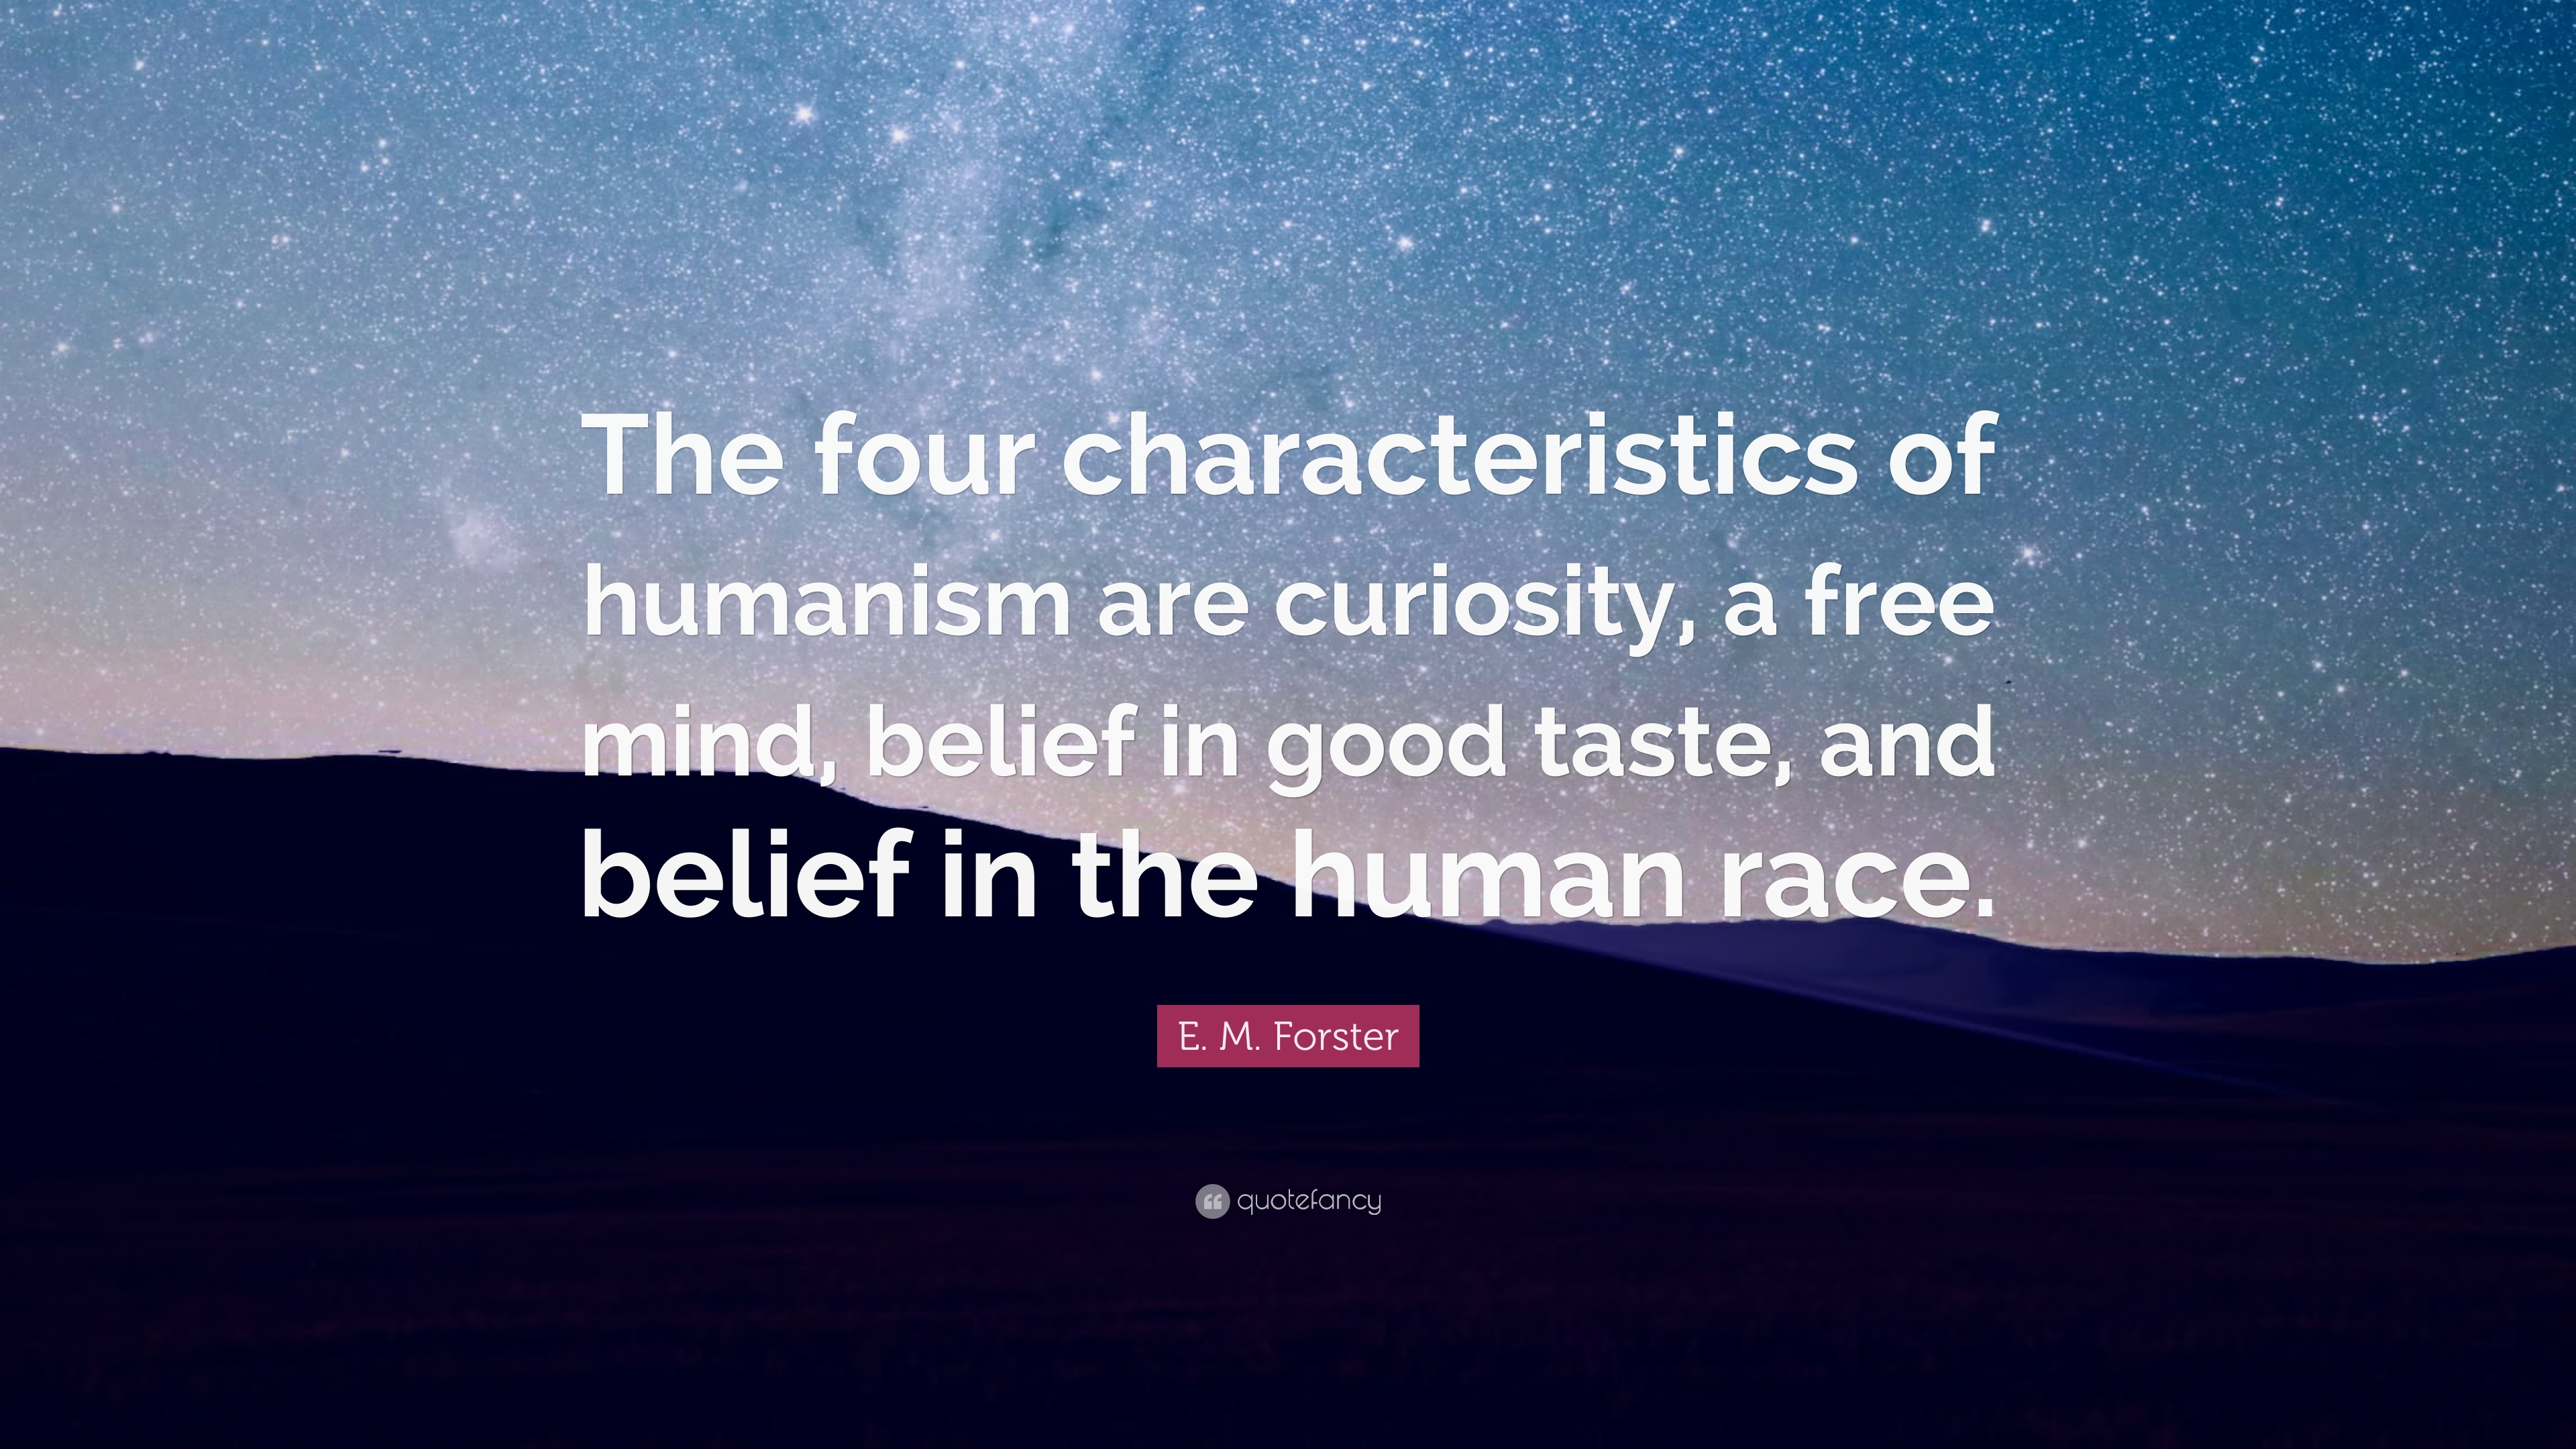 What are human characteristics?